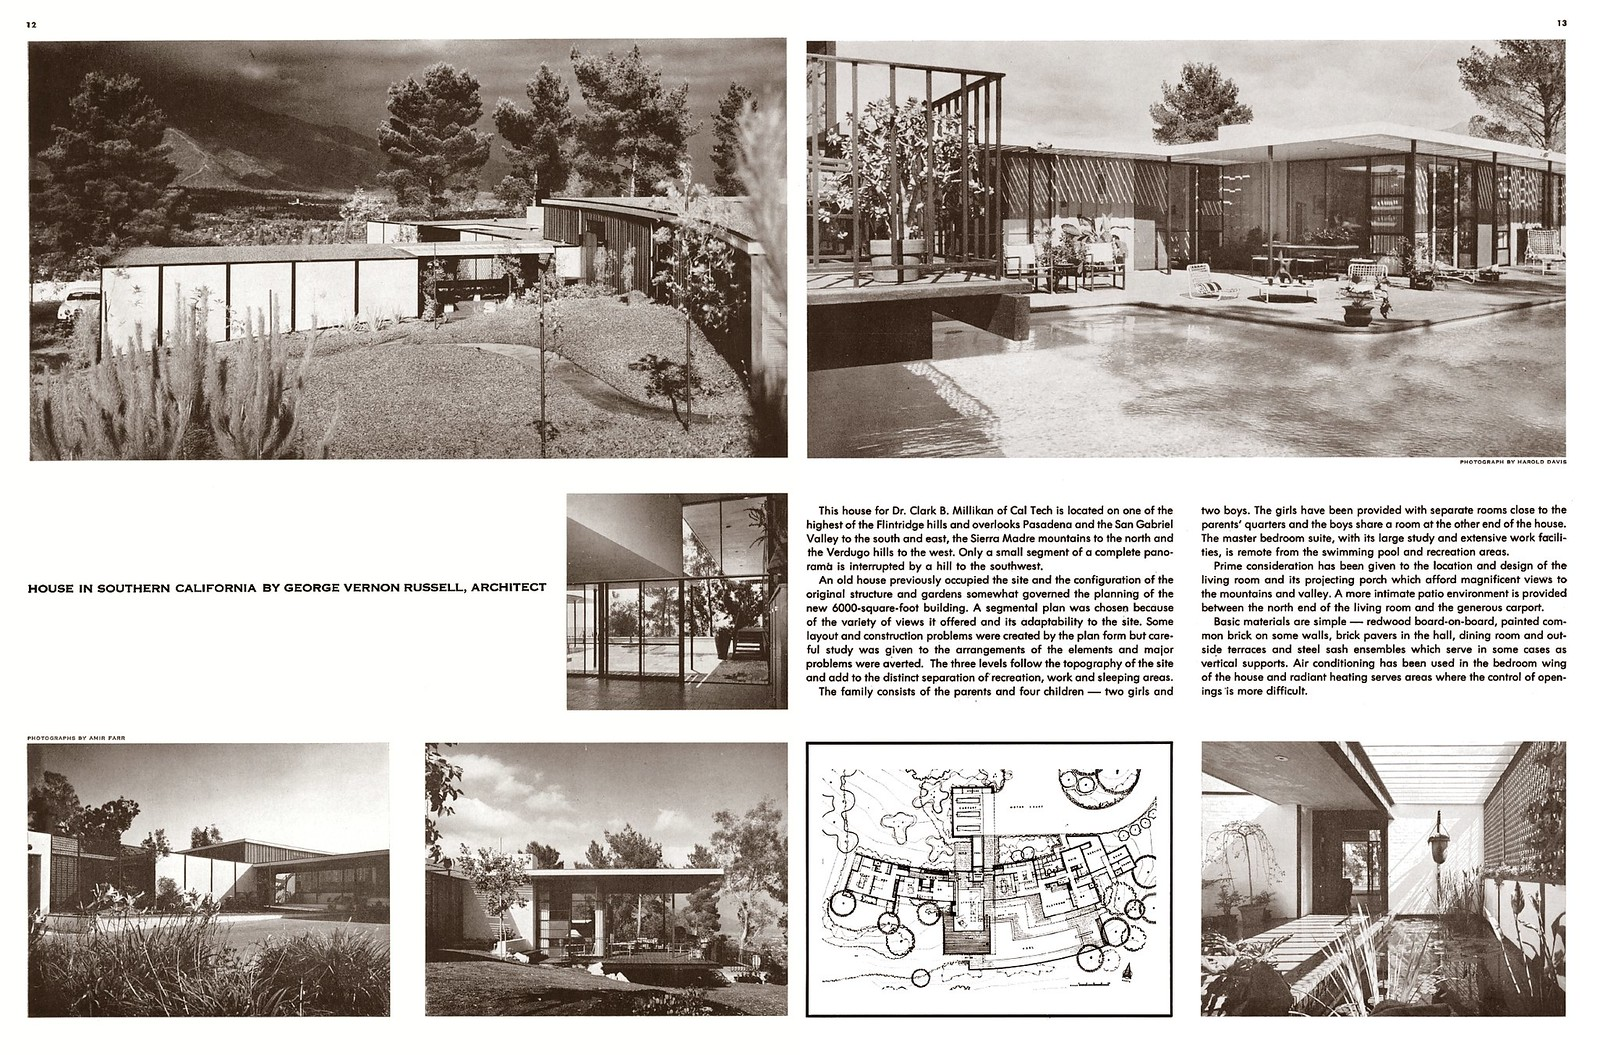 George Vernon Russell - Mallikin Residence - Southern California (1960)